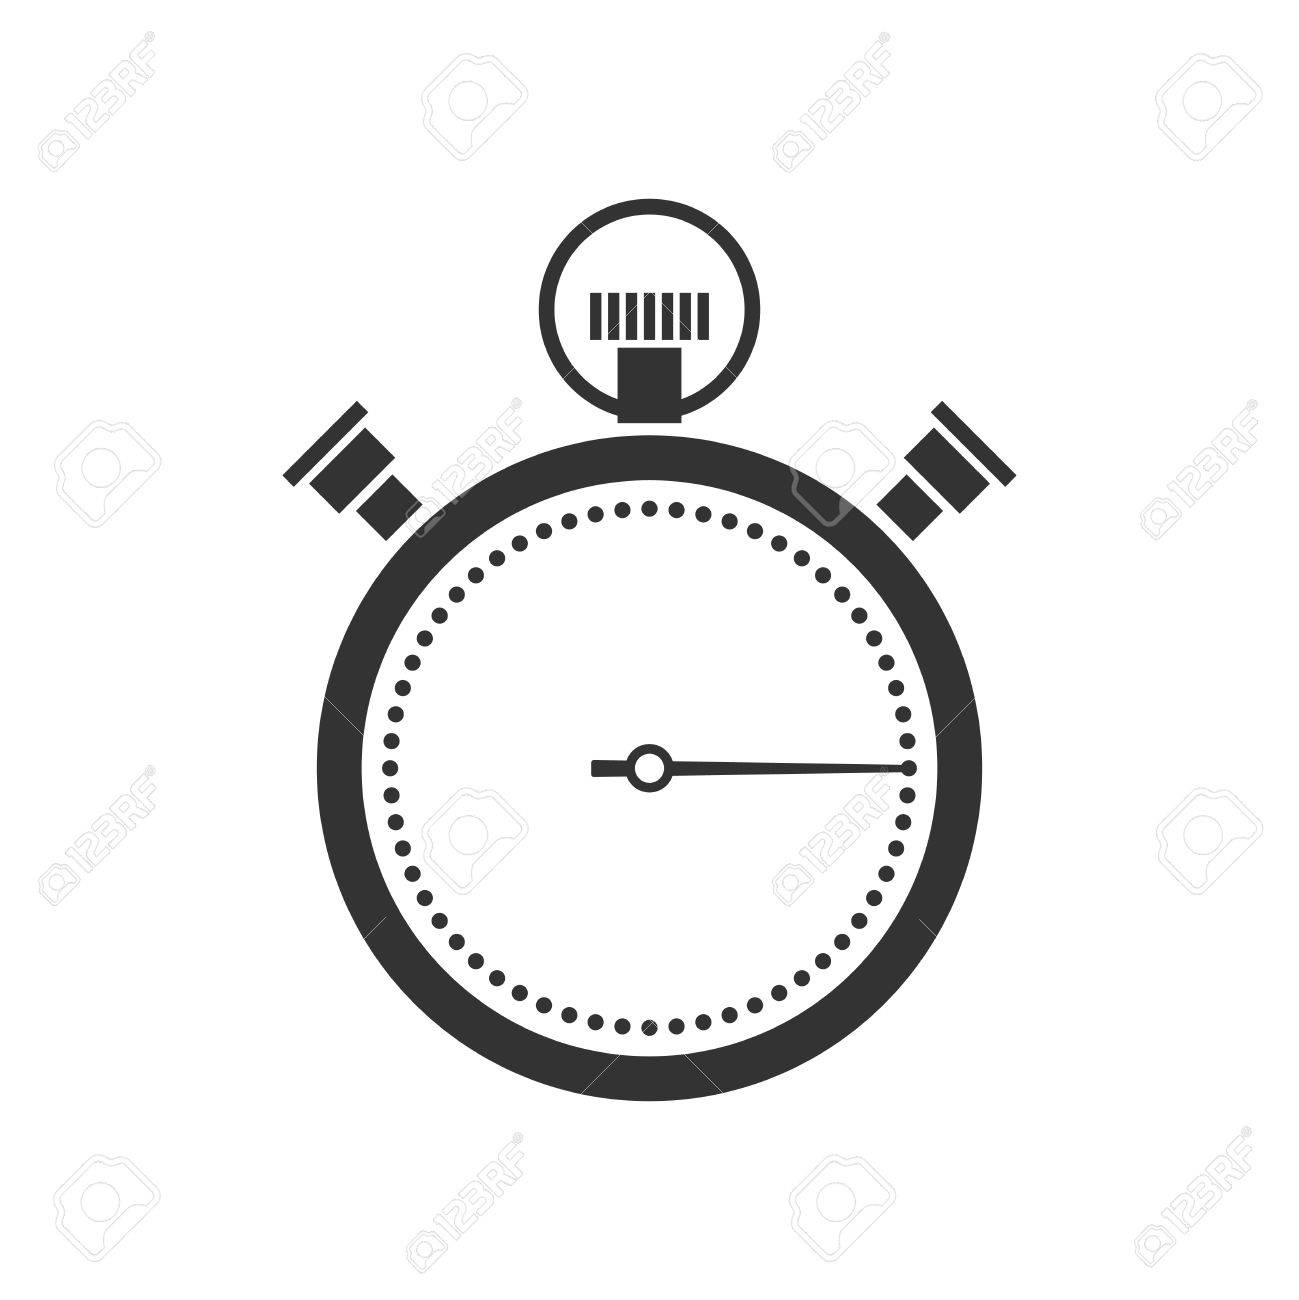 stopwatch or chronometer icon black silhouette on white background Stock Vector - 25999677